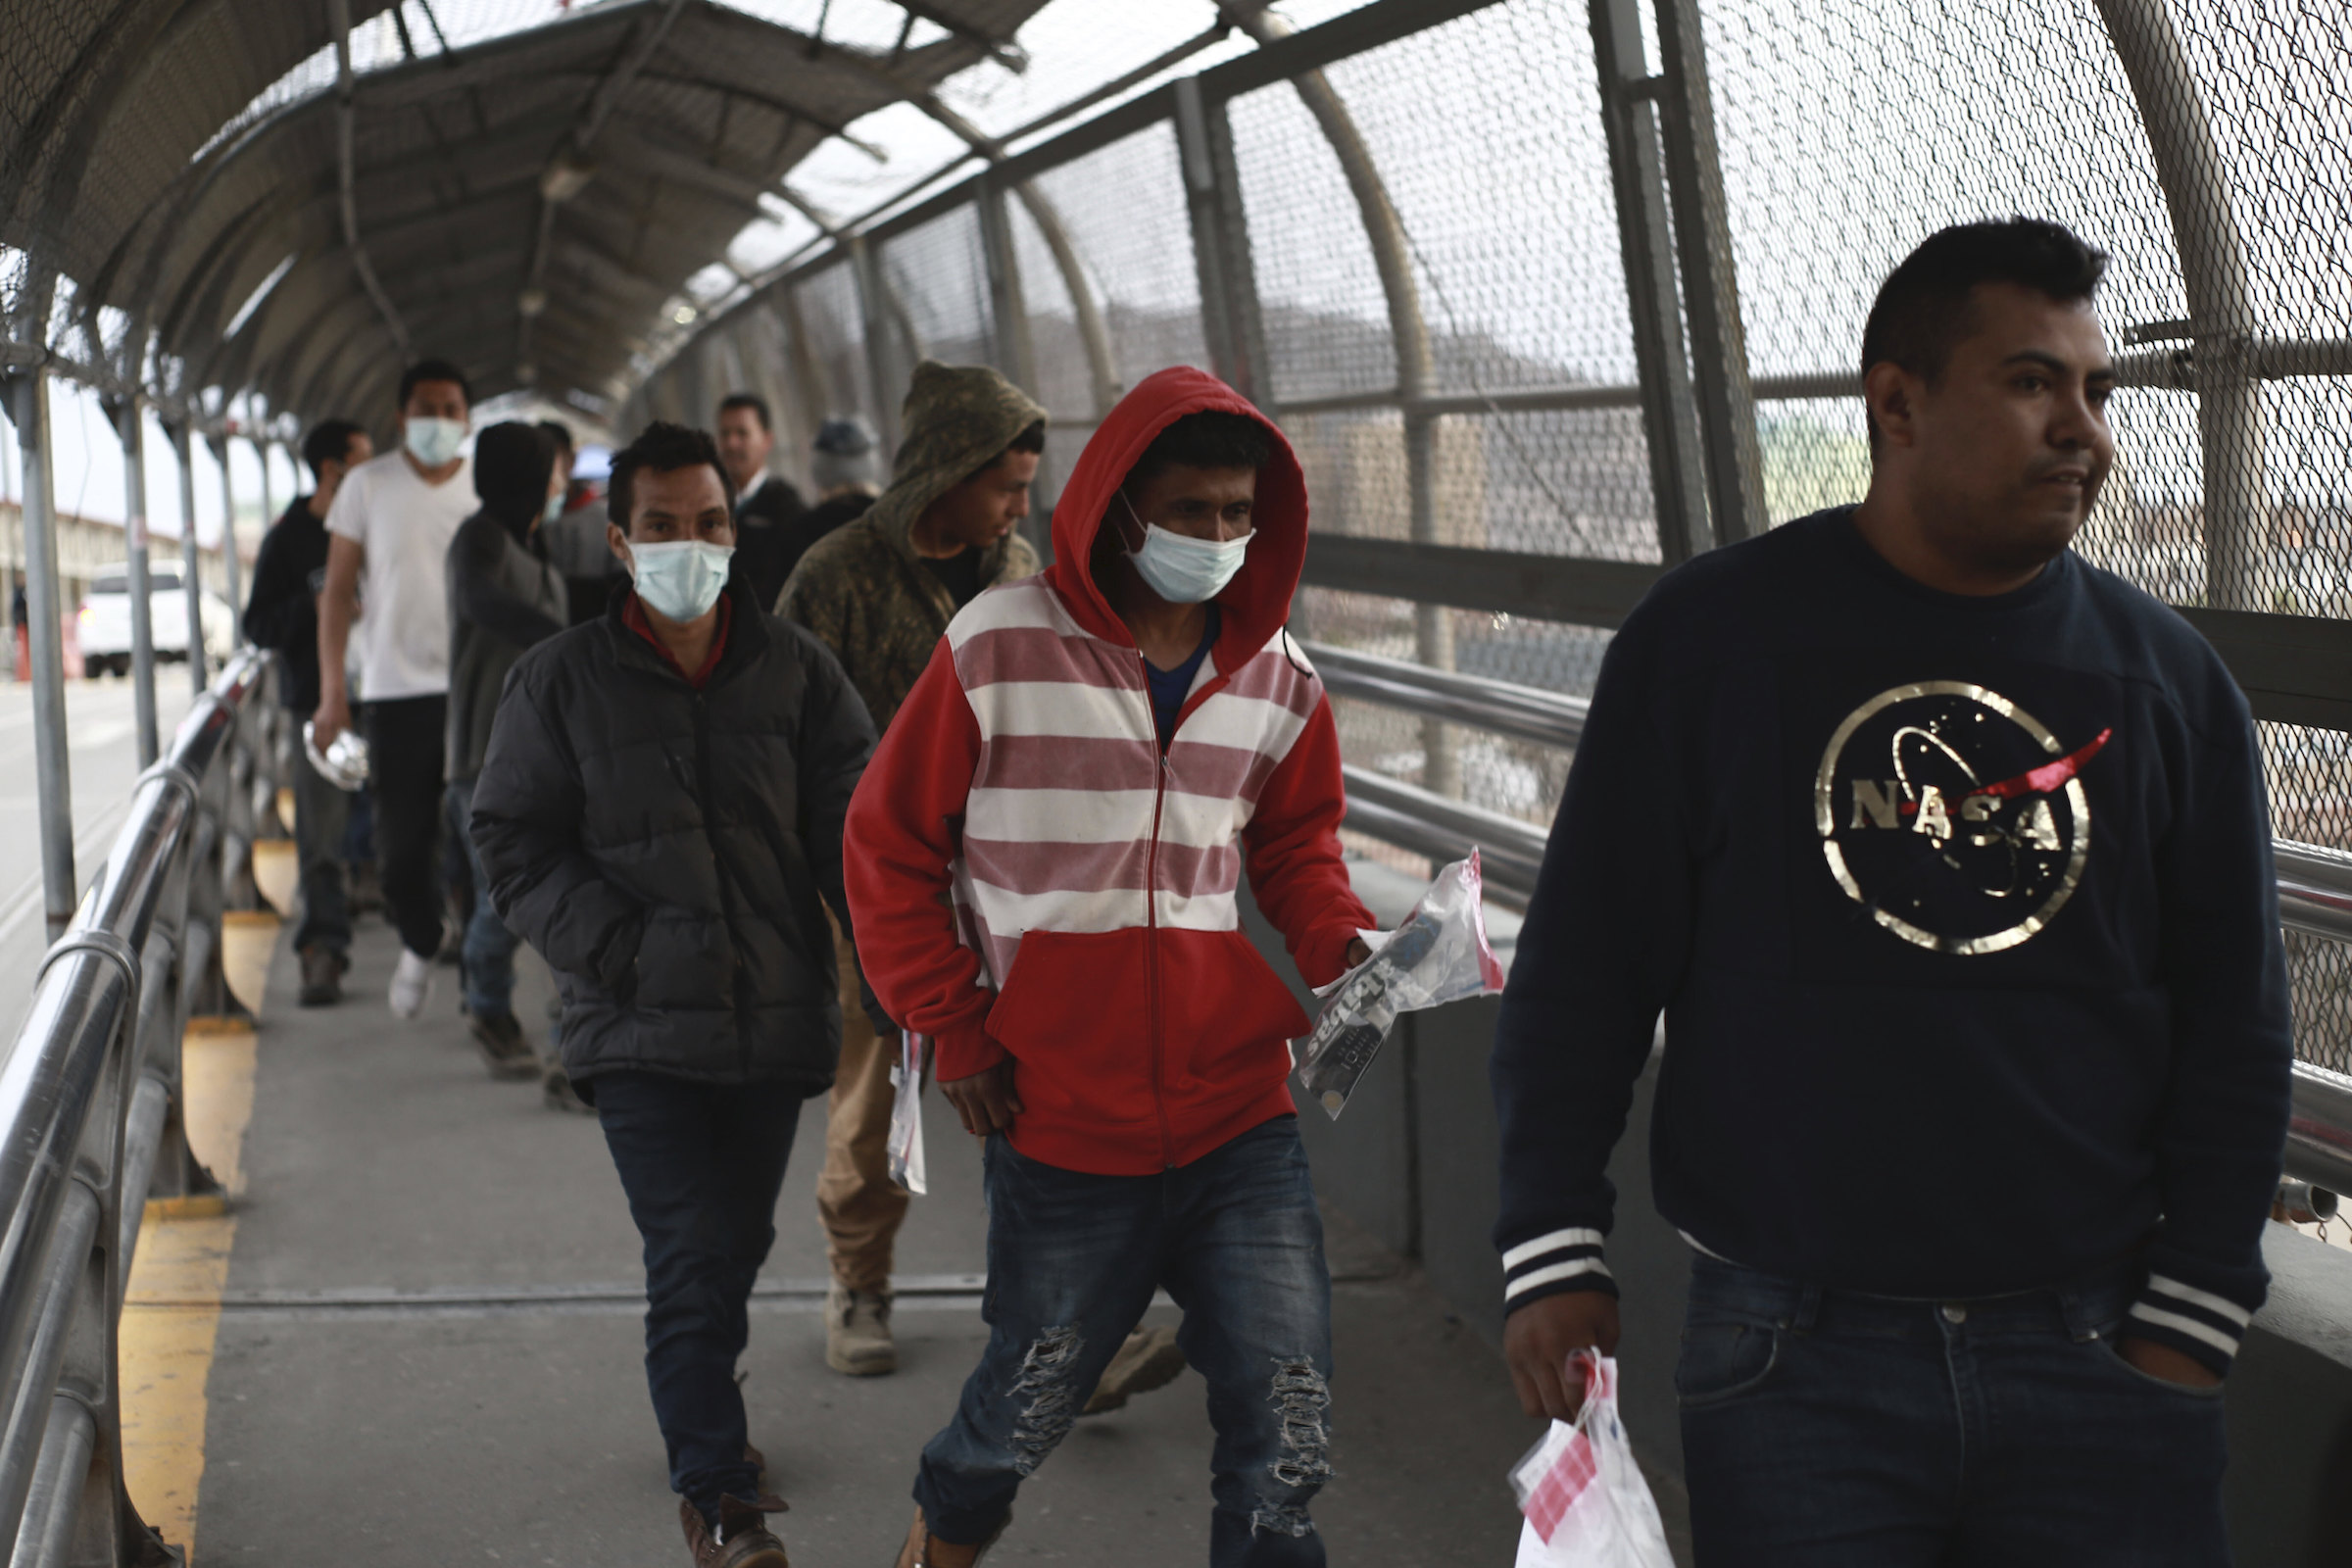 Central American migrants seeking asylum, some wearing protective face masks, return to Mexico via the international bridge at the U.S-Mexico border that joins Ciudad Juarez and El Paso on March 21, 2020.